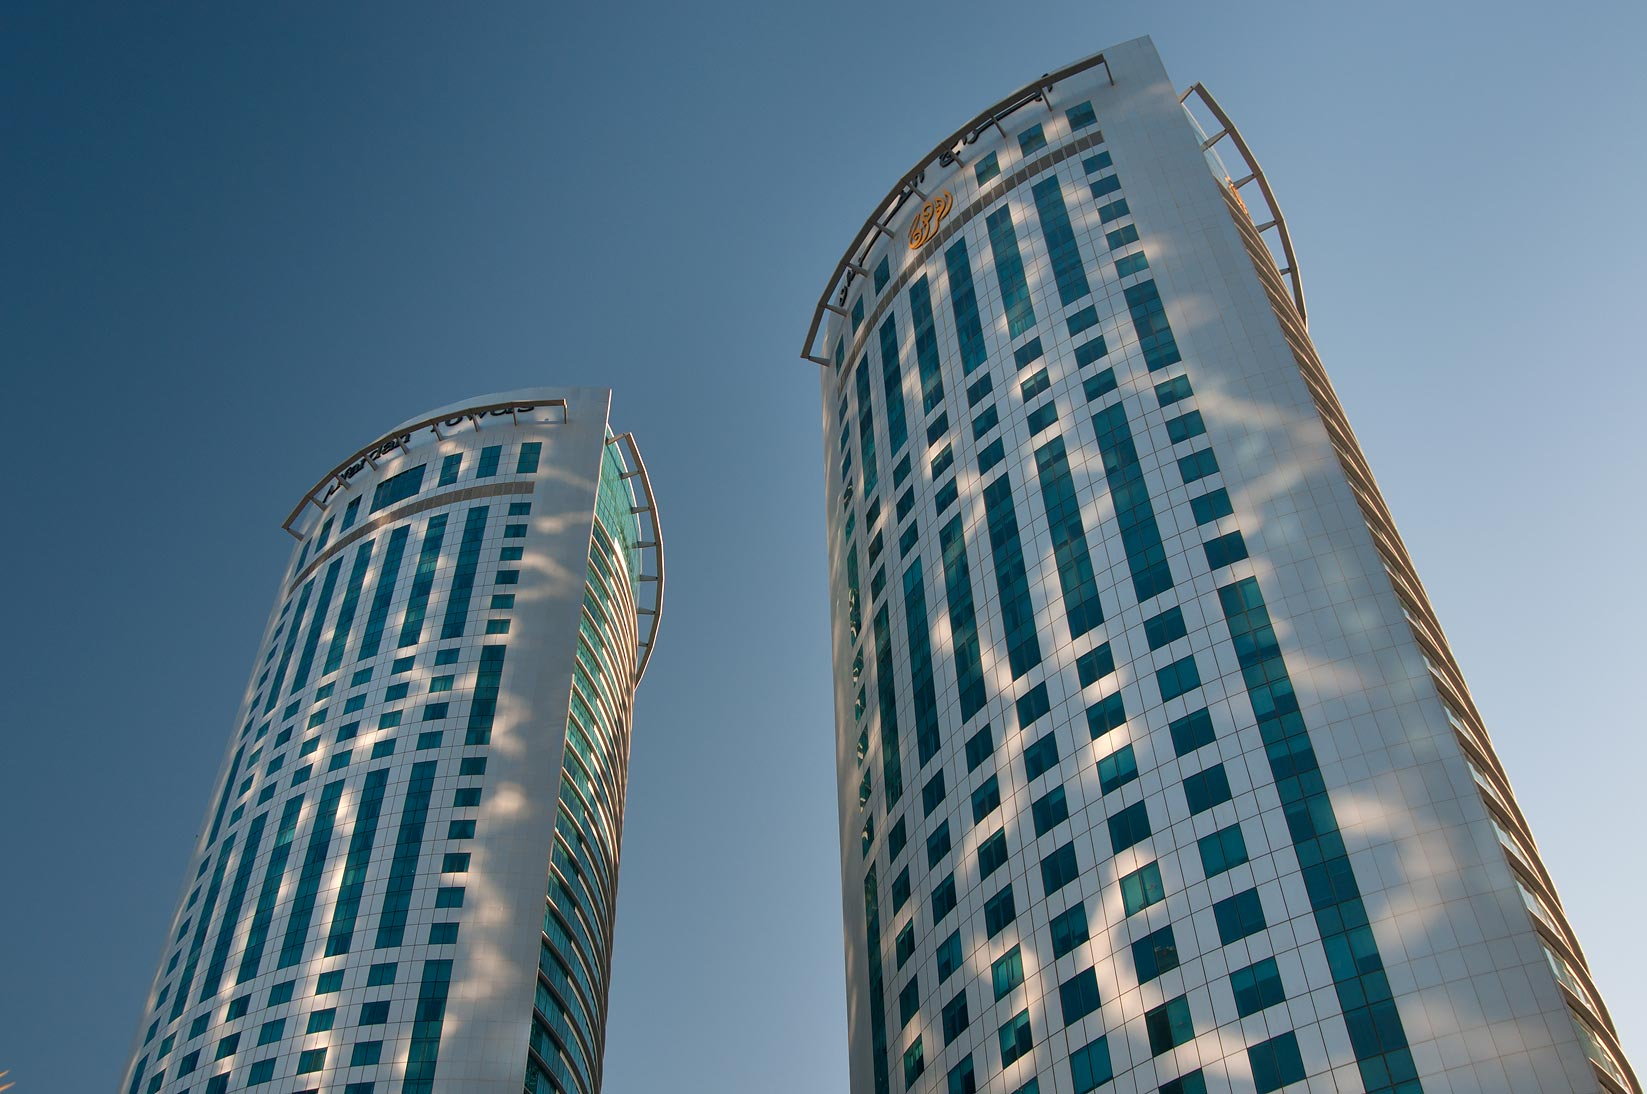 Al Fardan Towers in West Bay. Doha, Qatar